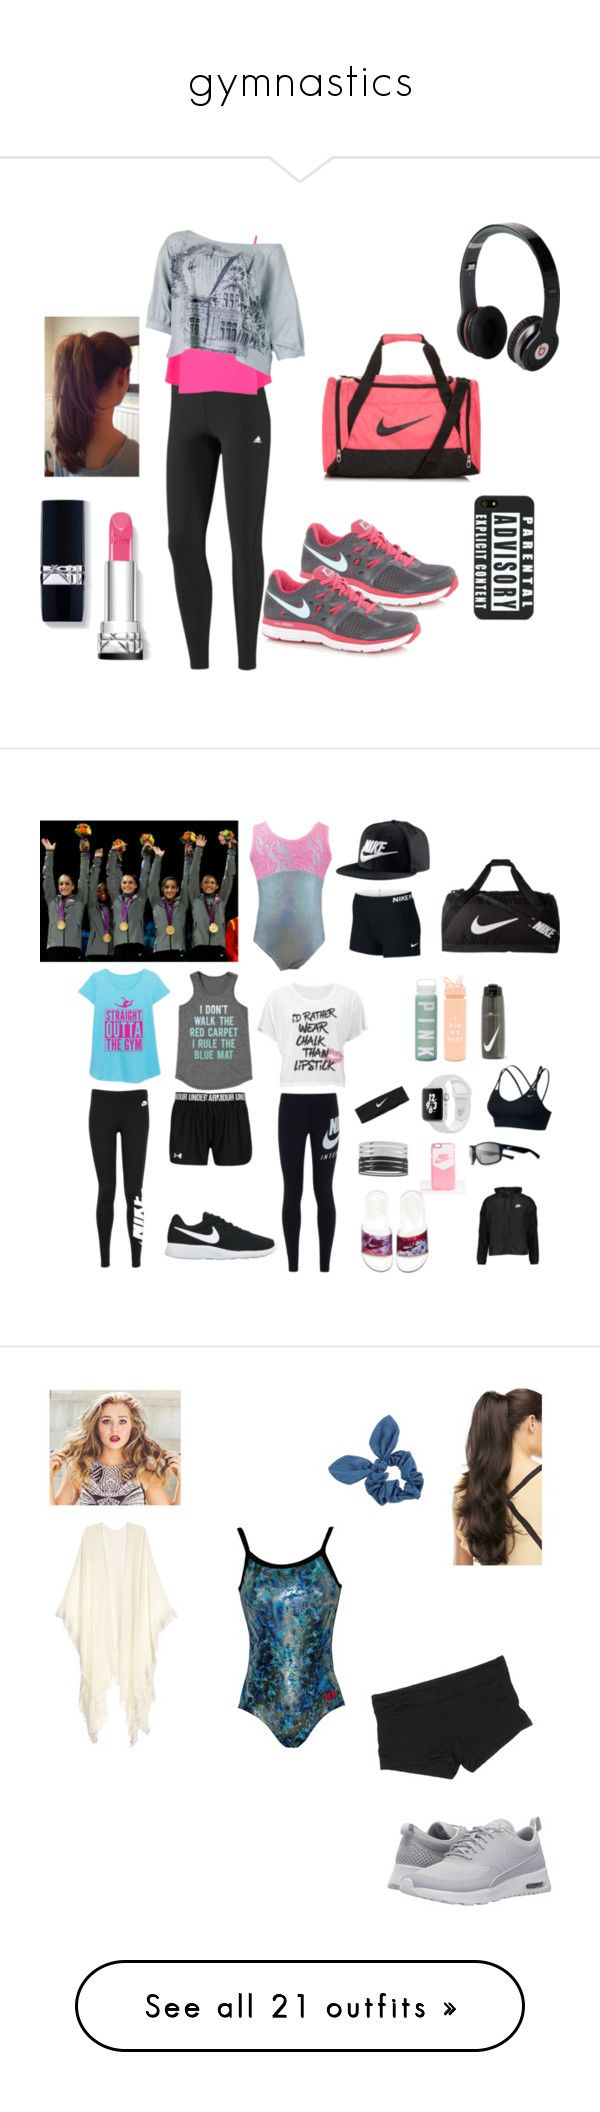 """""""gymnastics"""" by sheenchelcy ❤ liked on Polyvore featuring adidas, Miss Selfridge, NIKE, Beats by Dr. Dre, ban.do, Victoria's Secret, sporty, athletic, gymnastlife and Mossimo"""